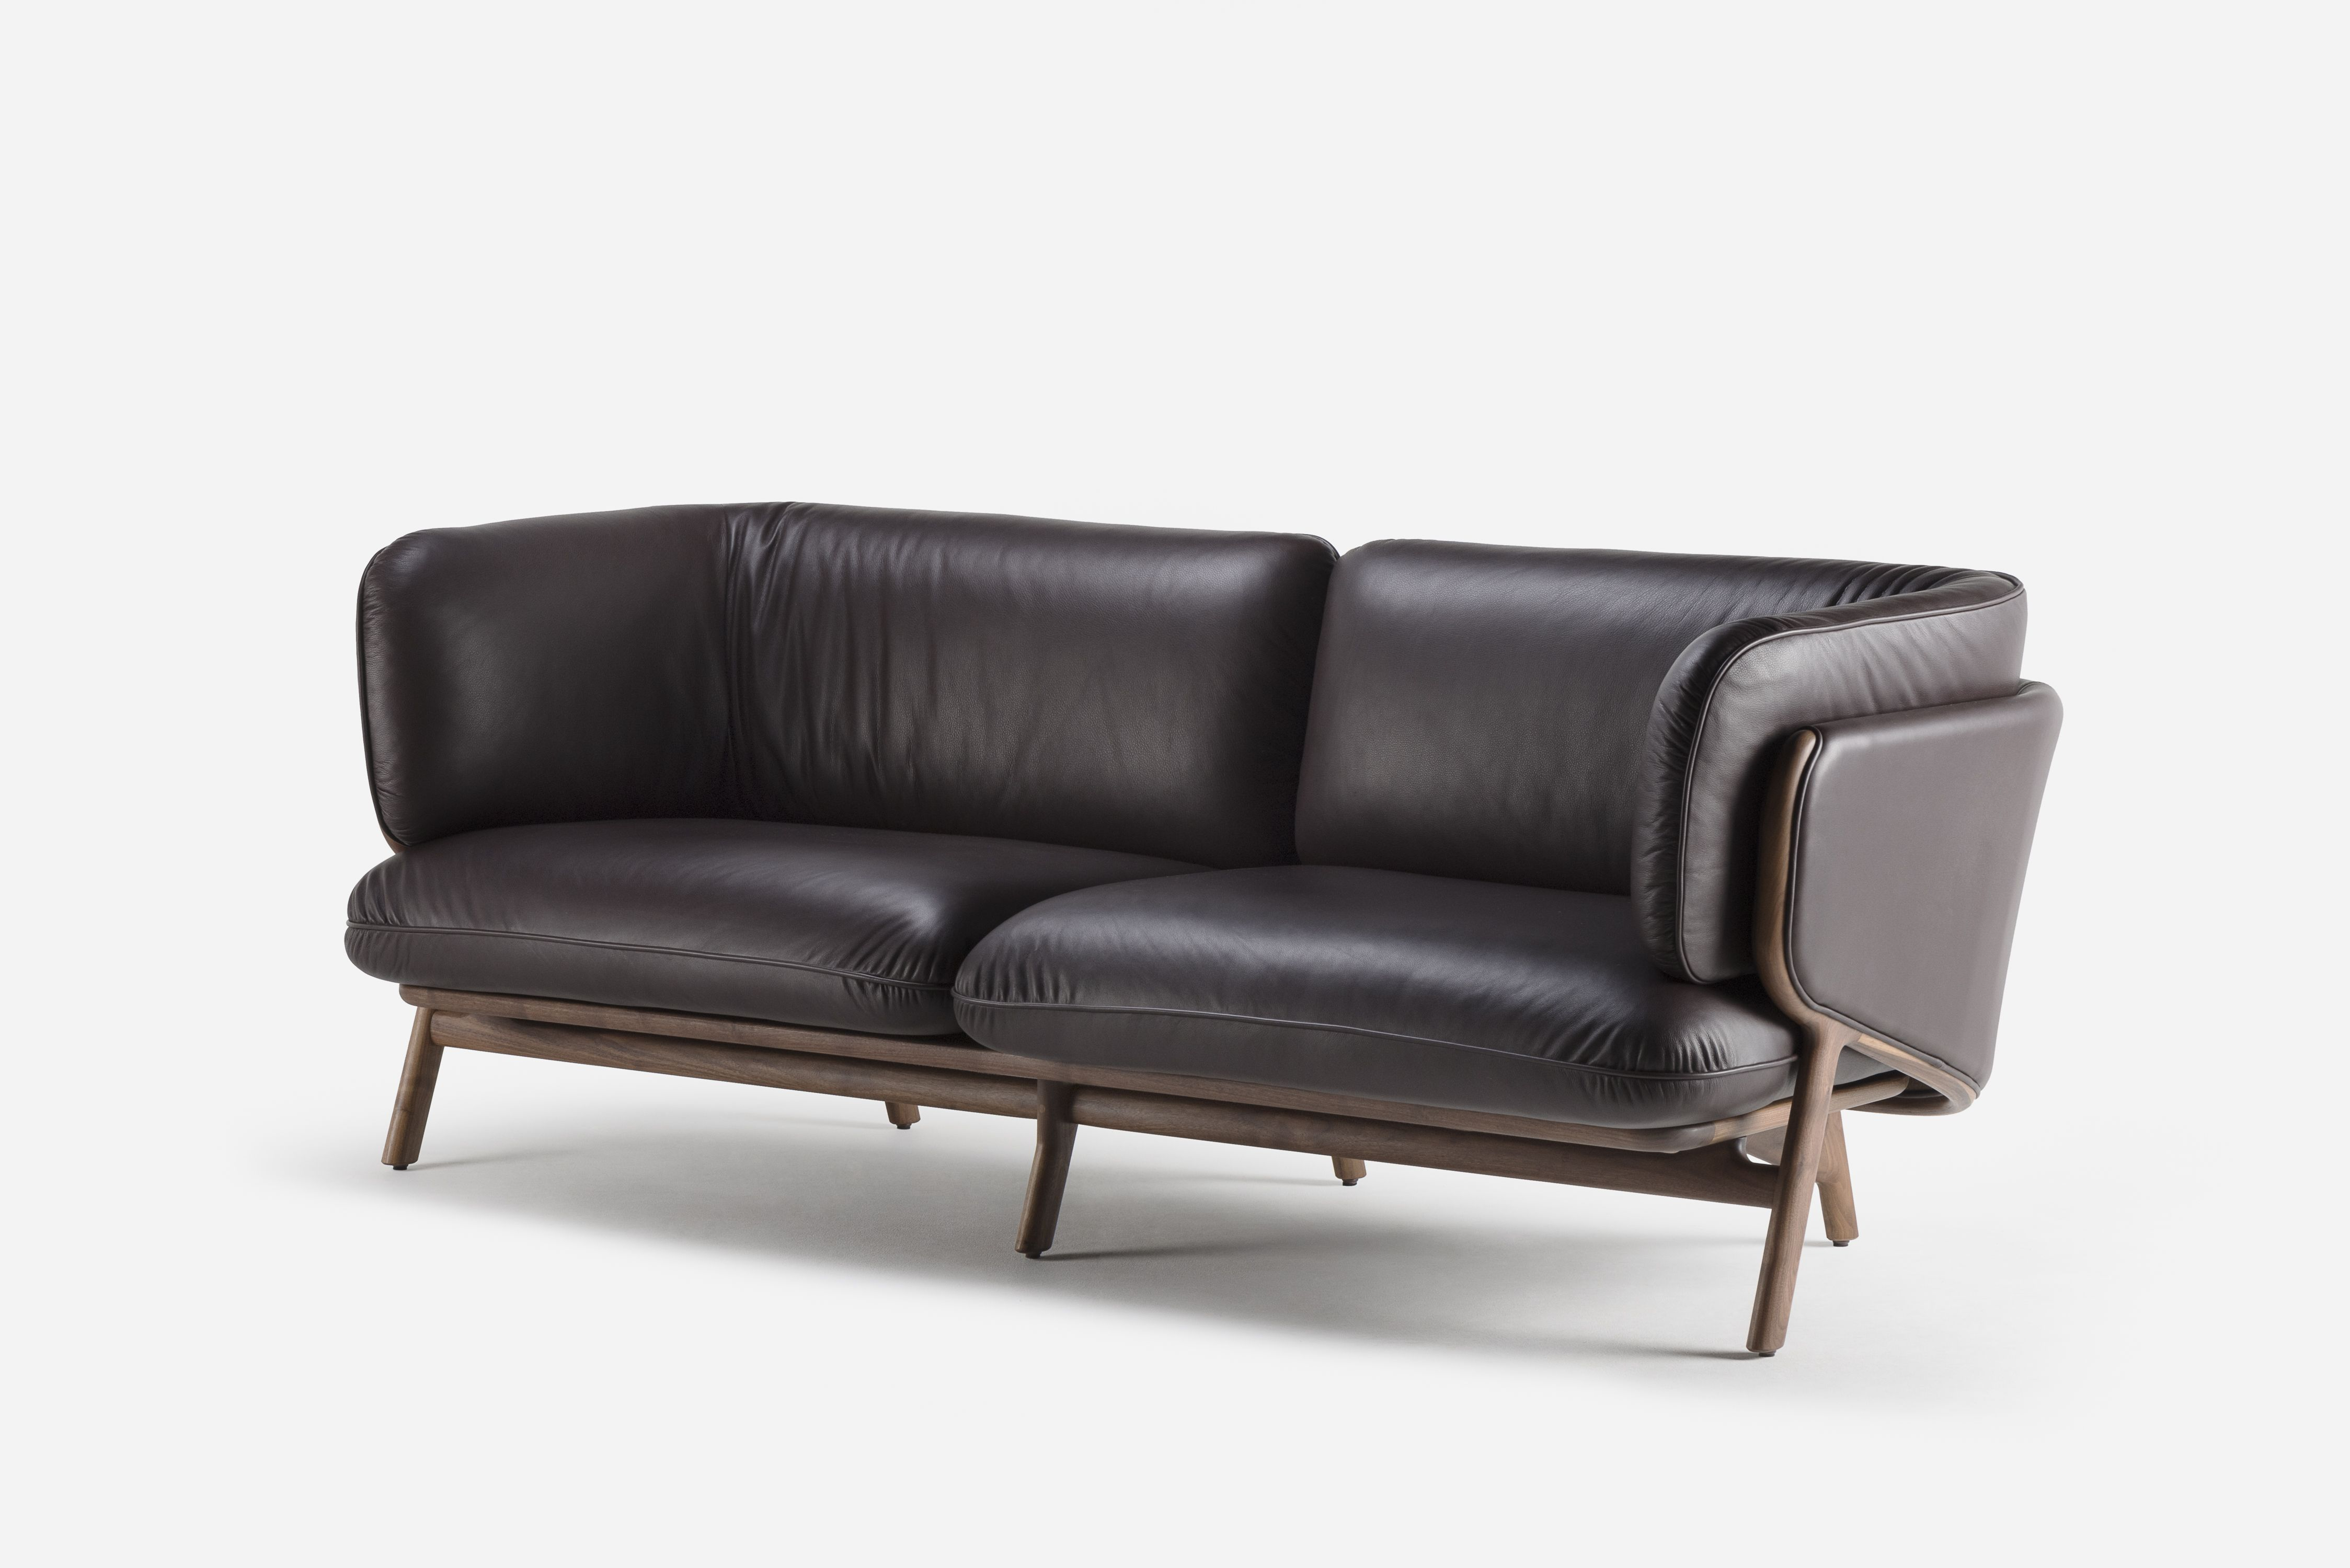 16 Best Apartment Size Sofas Couches for Small Apartments